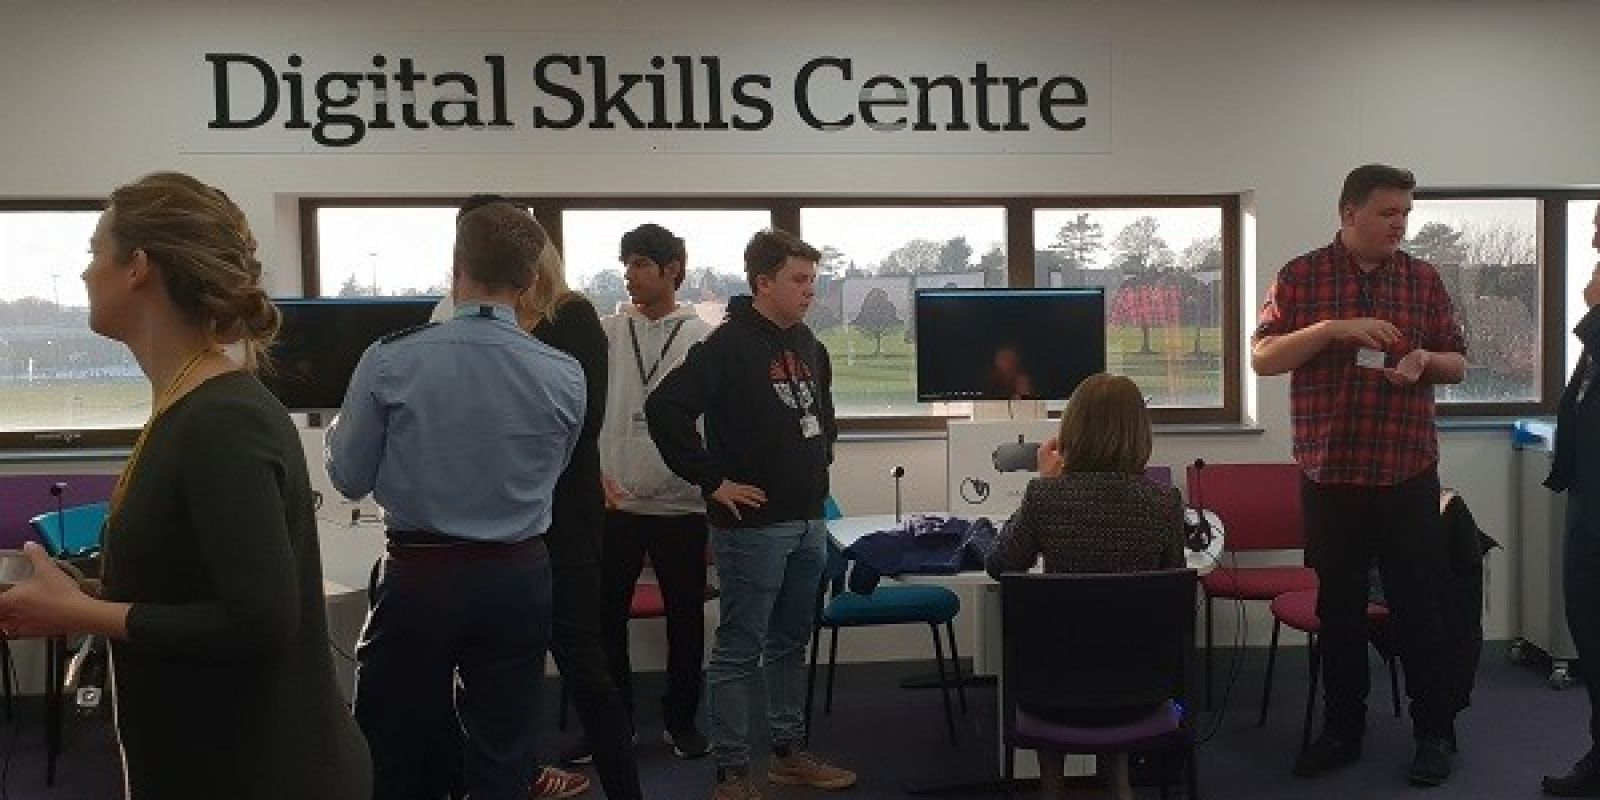 Digital Skills Centre, Stamford 2